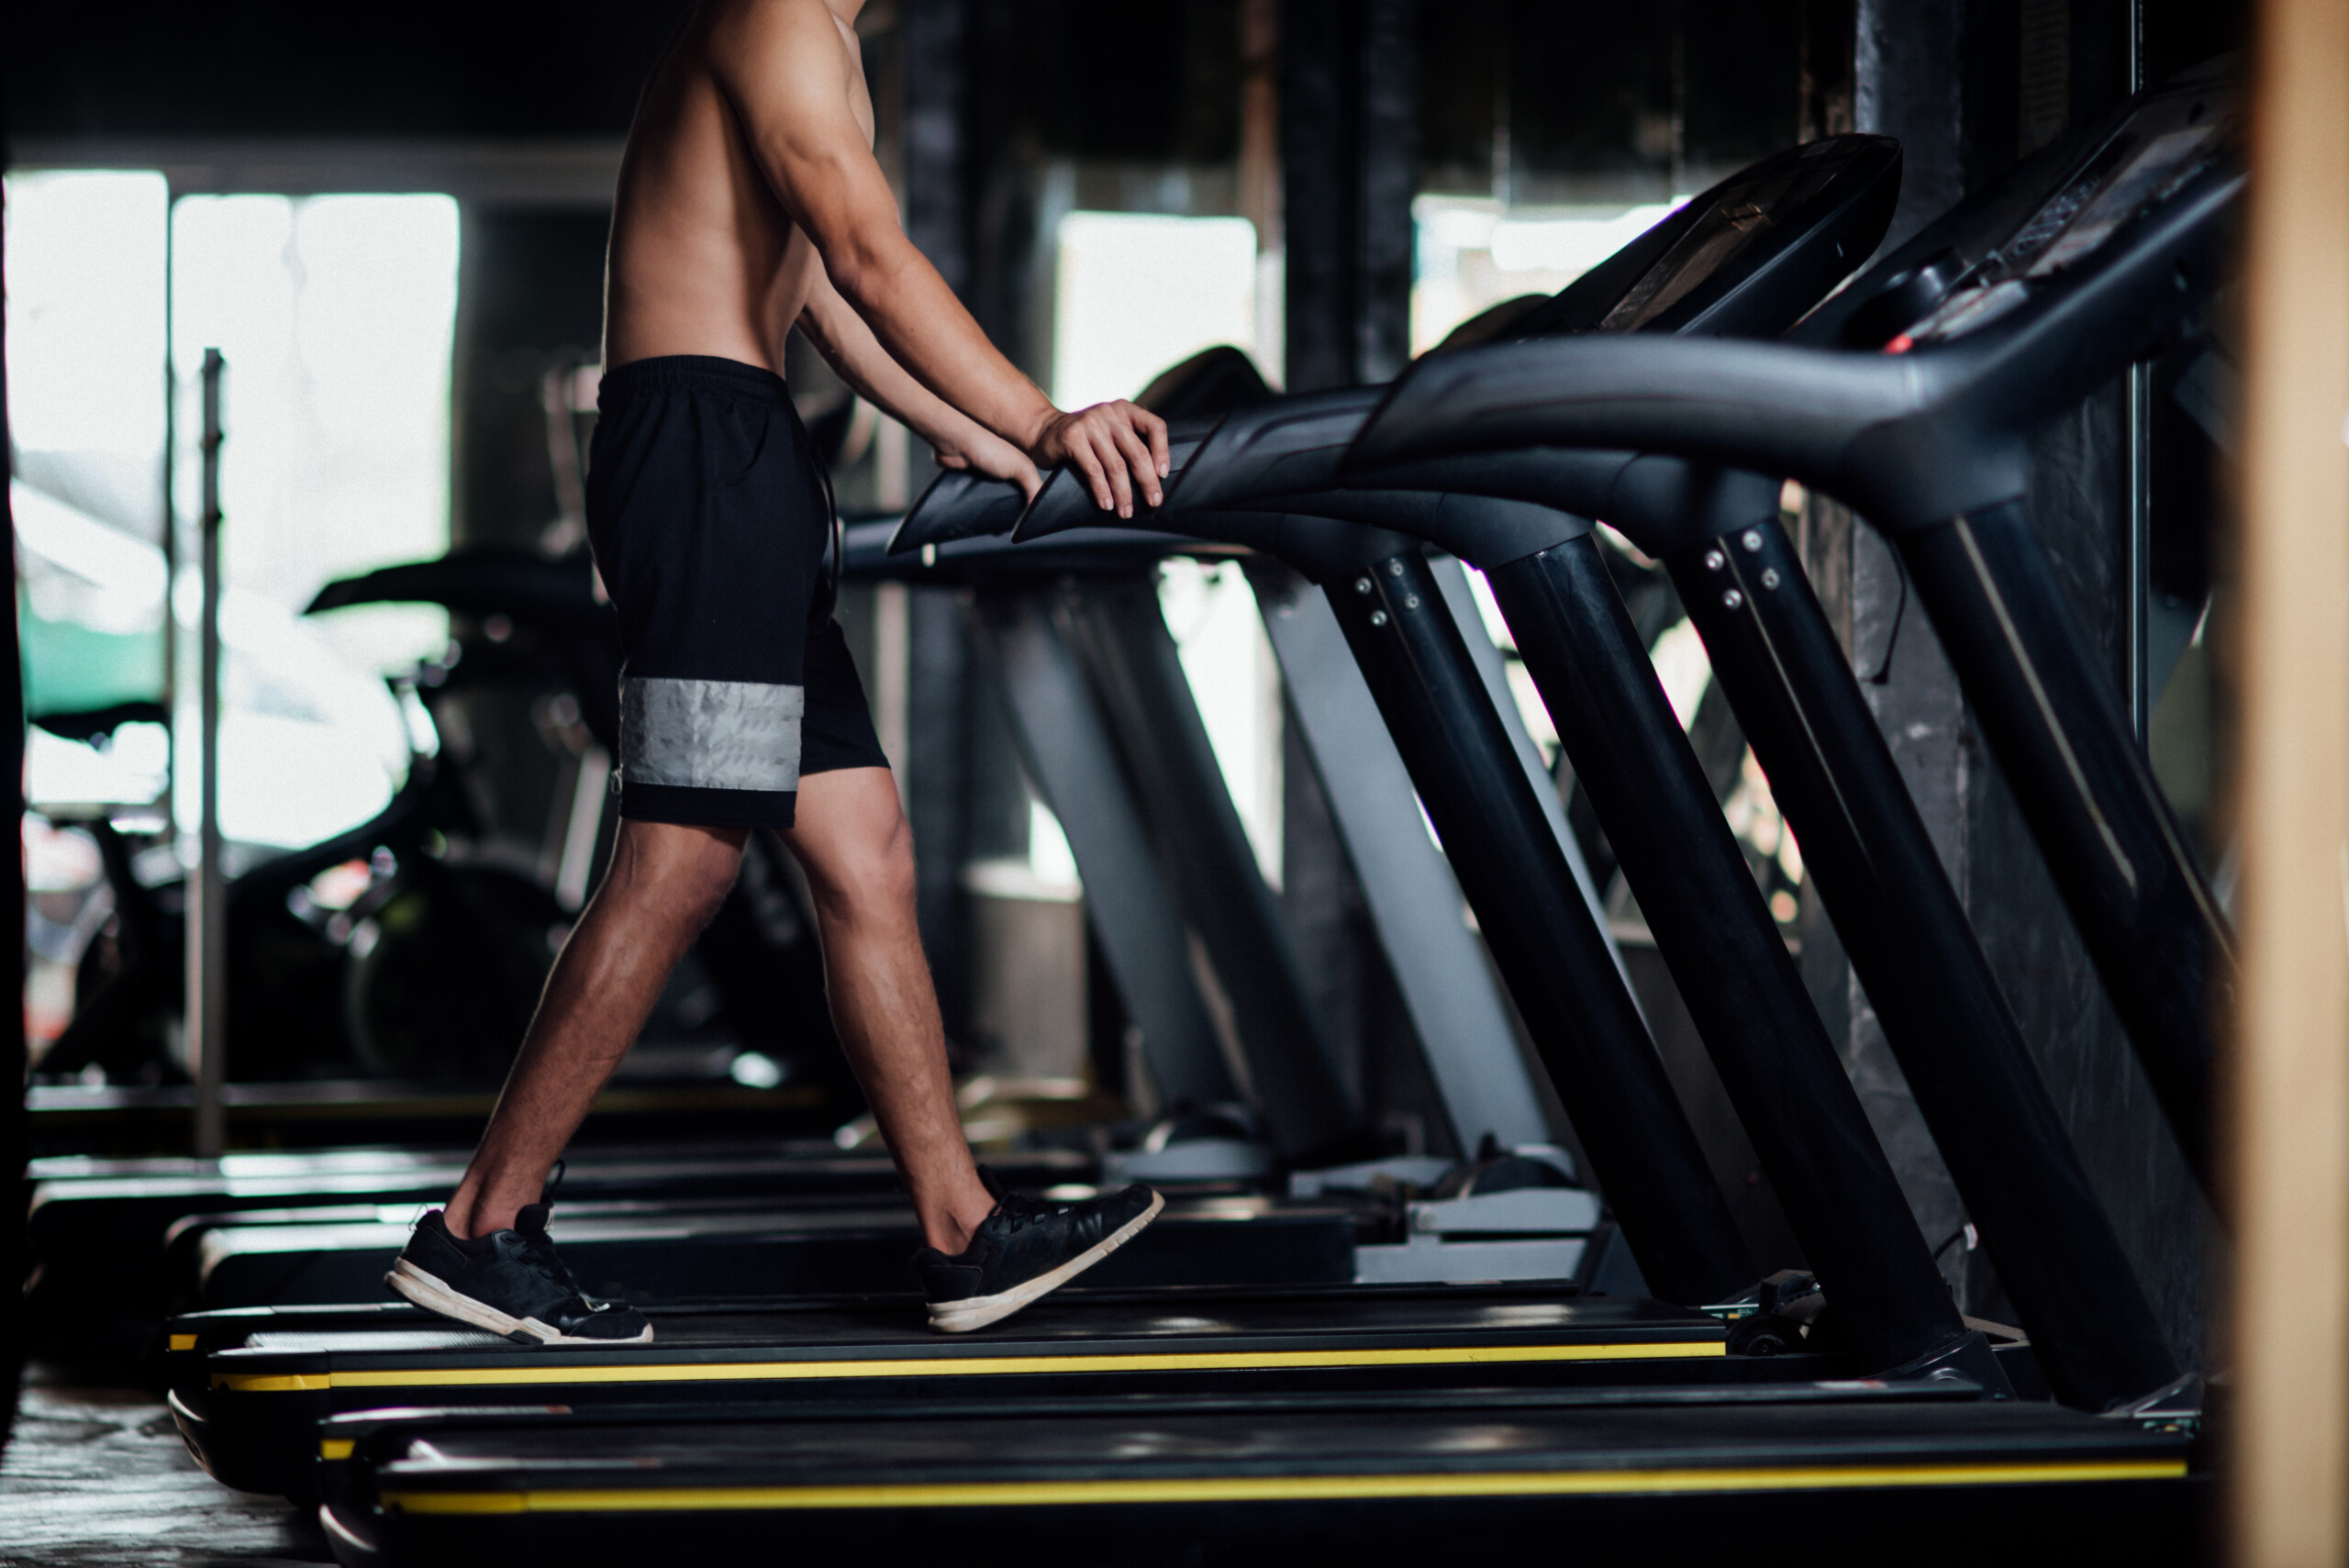 Holding onto a Treadmill Is Wrong Even with Good Posture